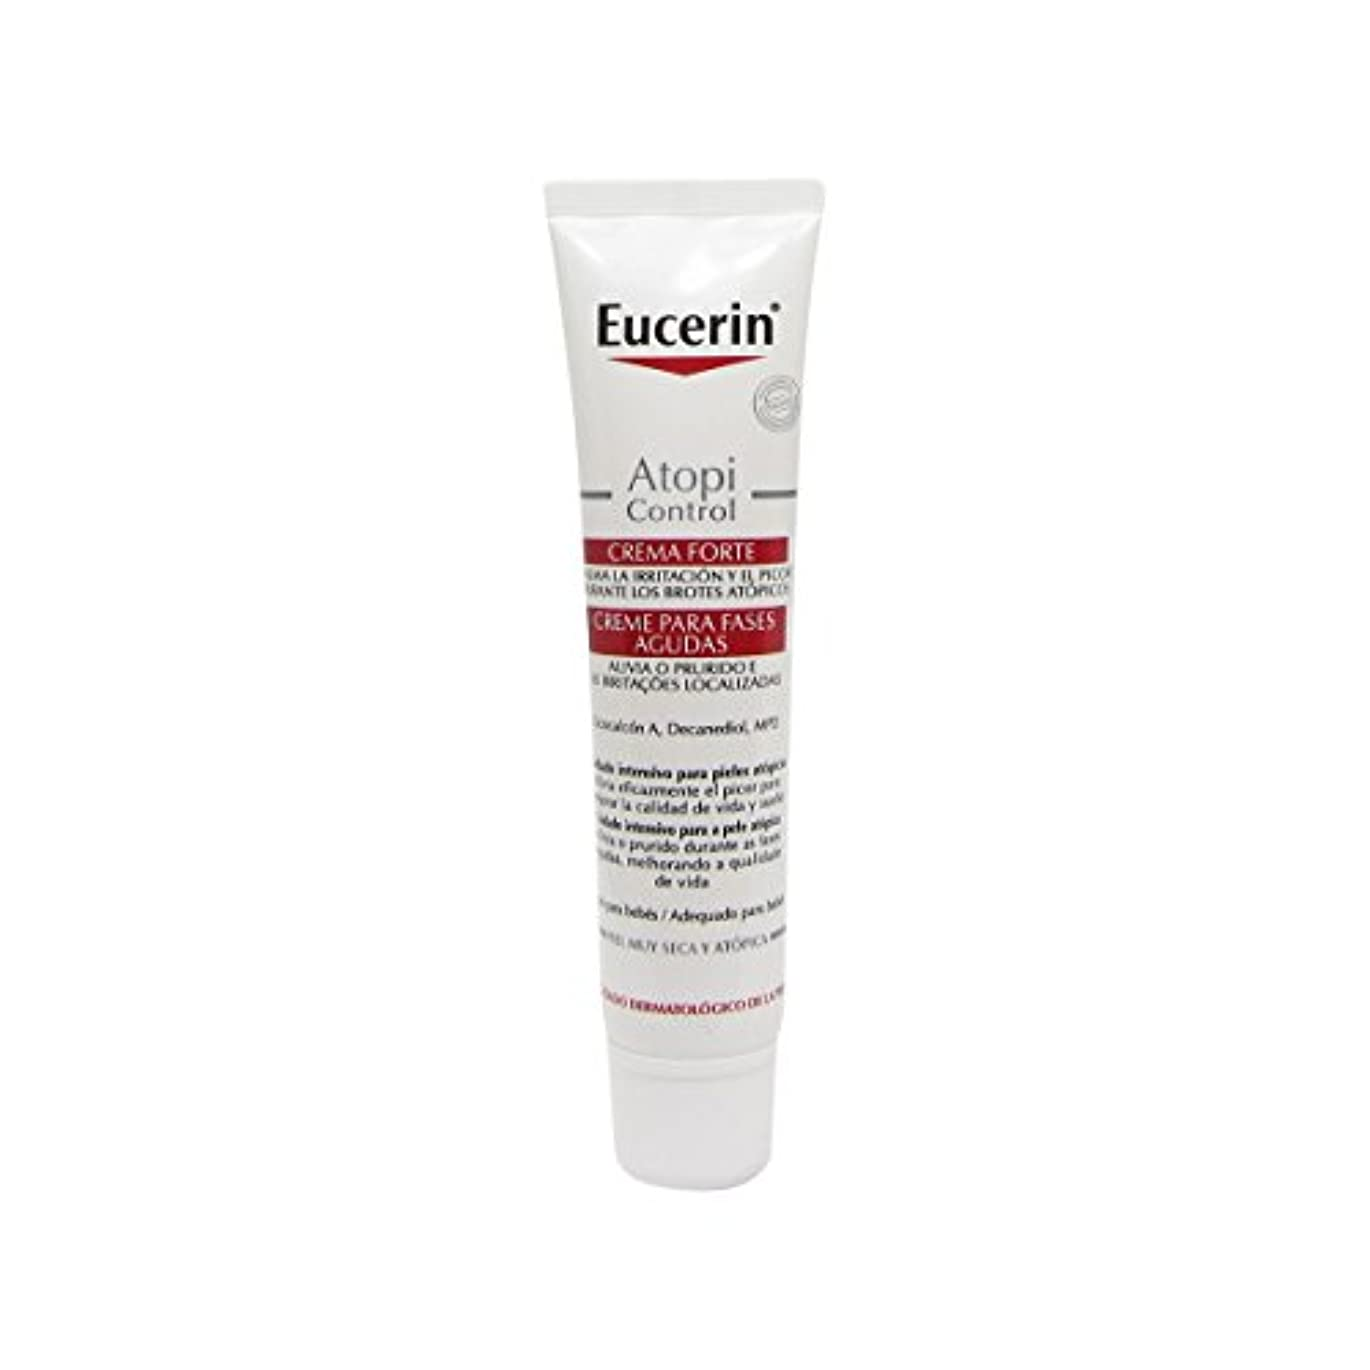 オン理論マナーEucerin Atopicontrol Acute Care Cream 40ml [並行輸入品]